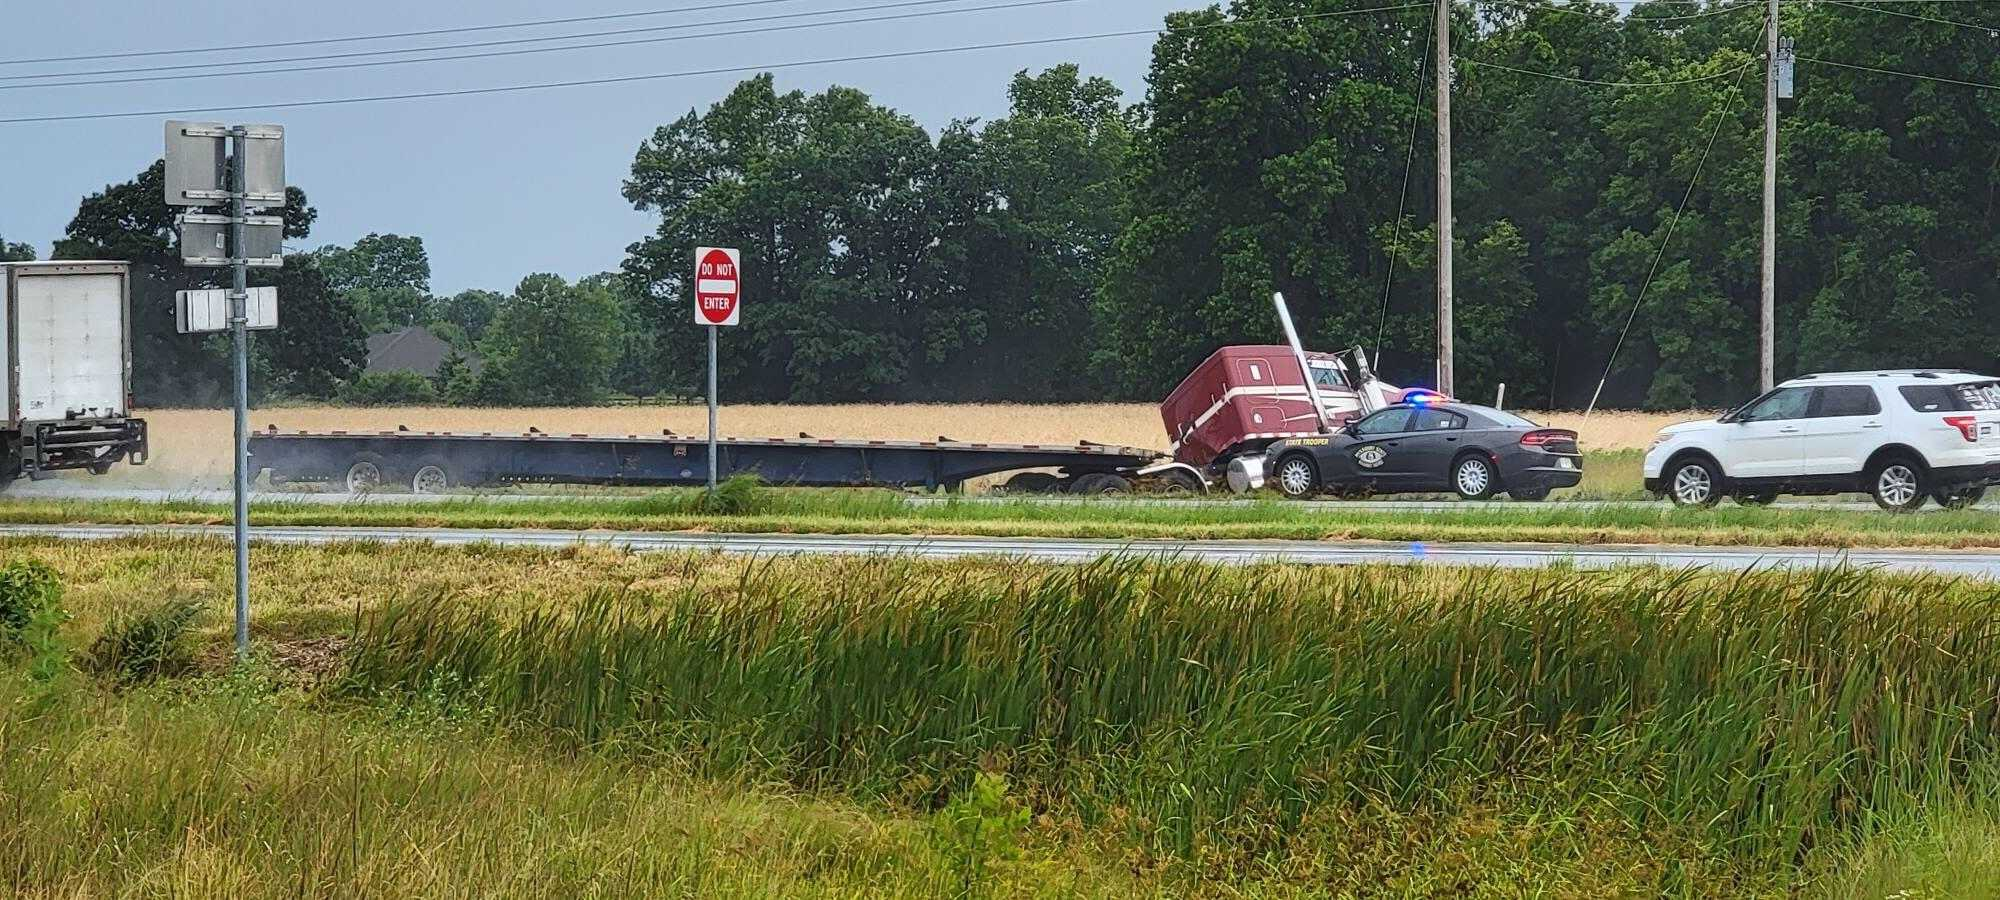 One person was injured in a crash on Highway 63 near Sturgeon late Thursday morning.